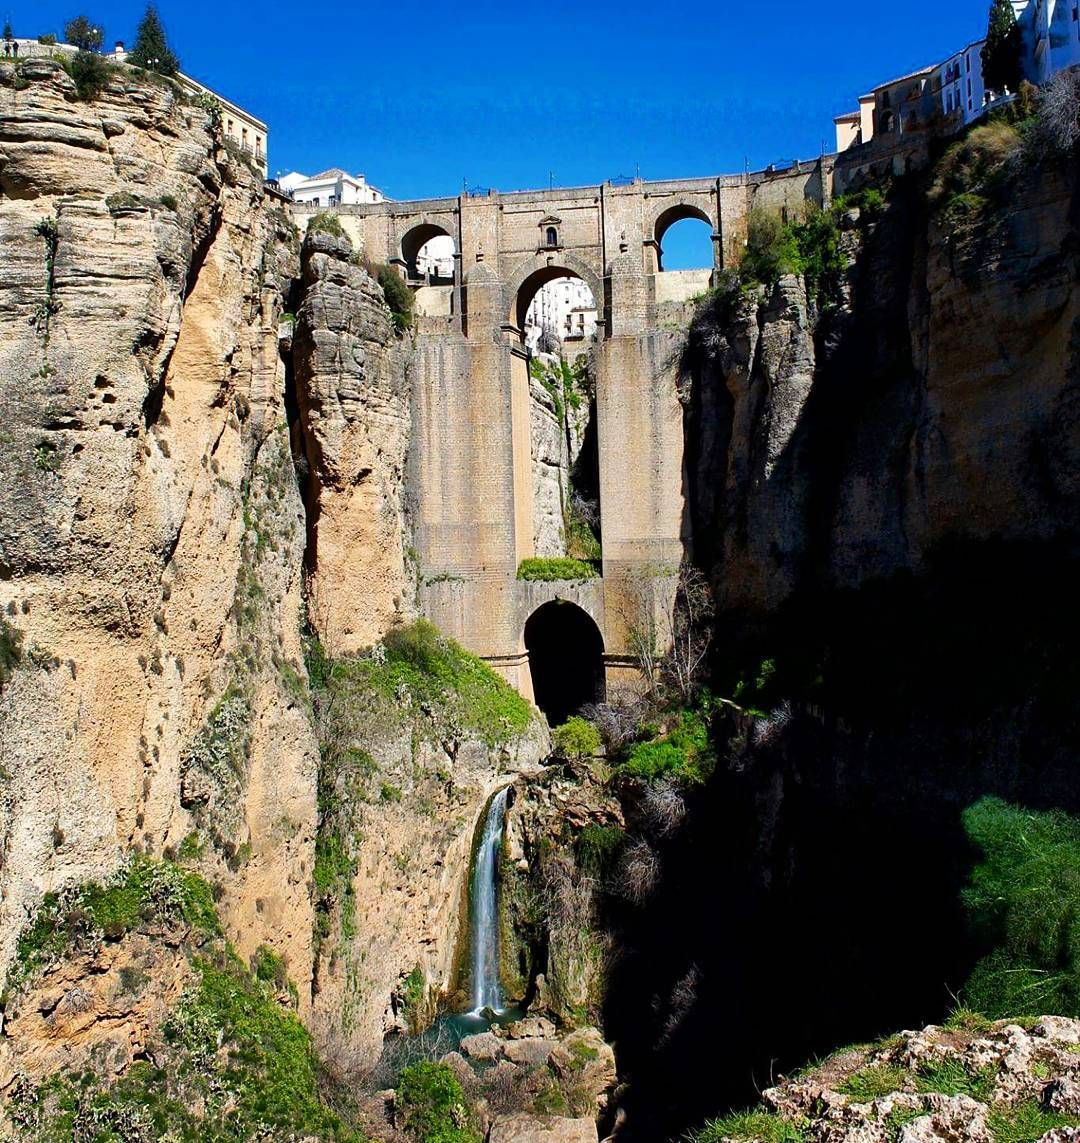 "The ""new"" bridge to old town.  #ronda #spain #españa #travel #architecture #photography #europe #rural #countryside #oldeurope #studyabroad #hiking #bridge #scenic #scenery #nature #waterfall #river #zen #beautiful #mountains #gorge #outside by soundaffects"